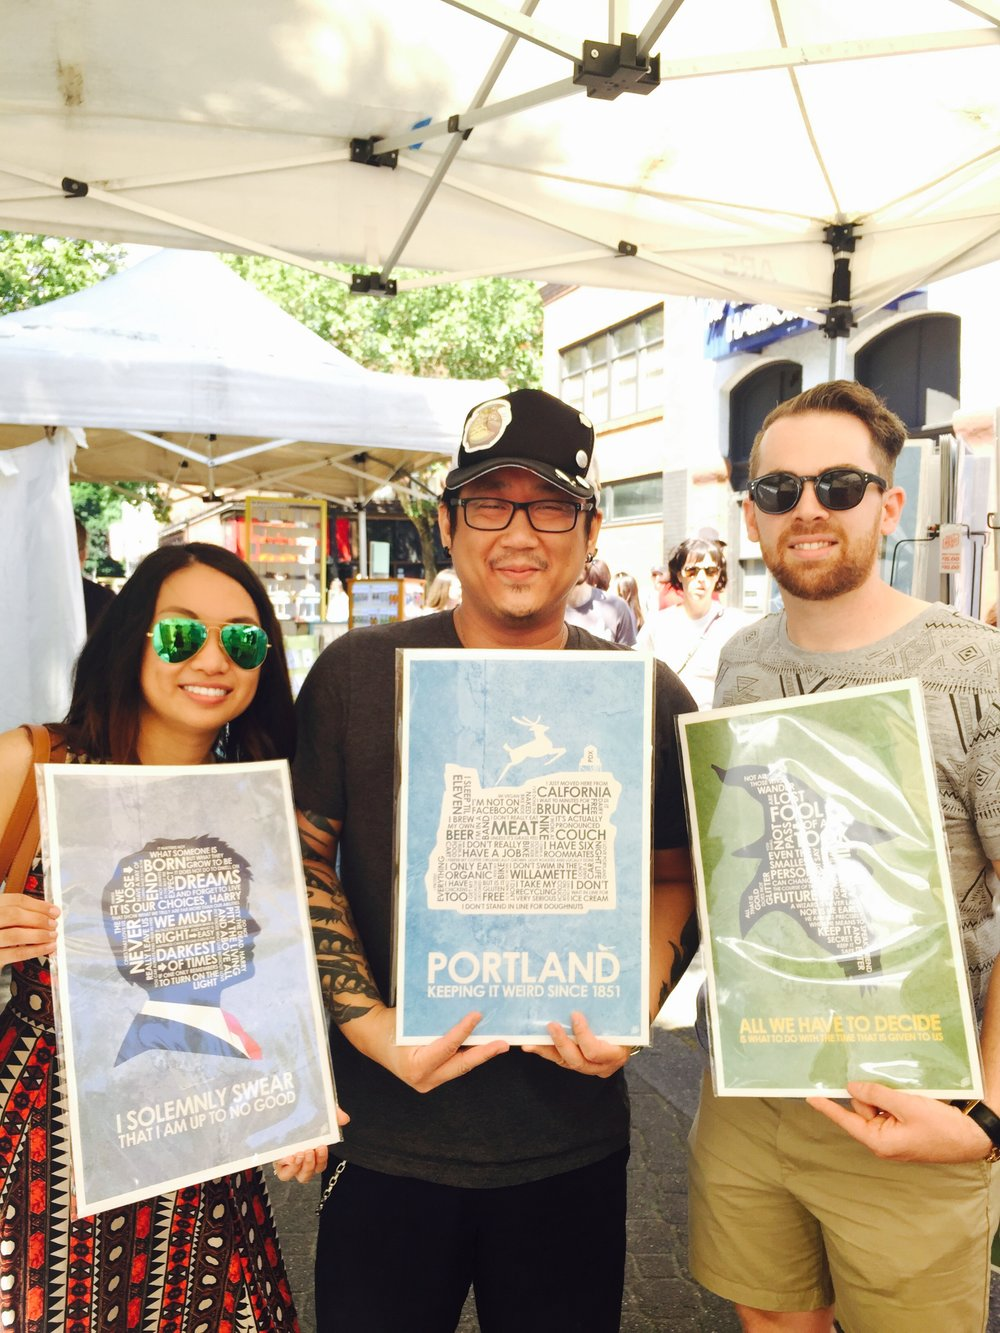 If you get a chance to visit Portland's Saturday Market, stop by to see artist Stephen Poon and his awesome posters. If you're not in the area, check out his store at www.outnerdme.com.